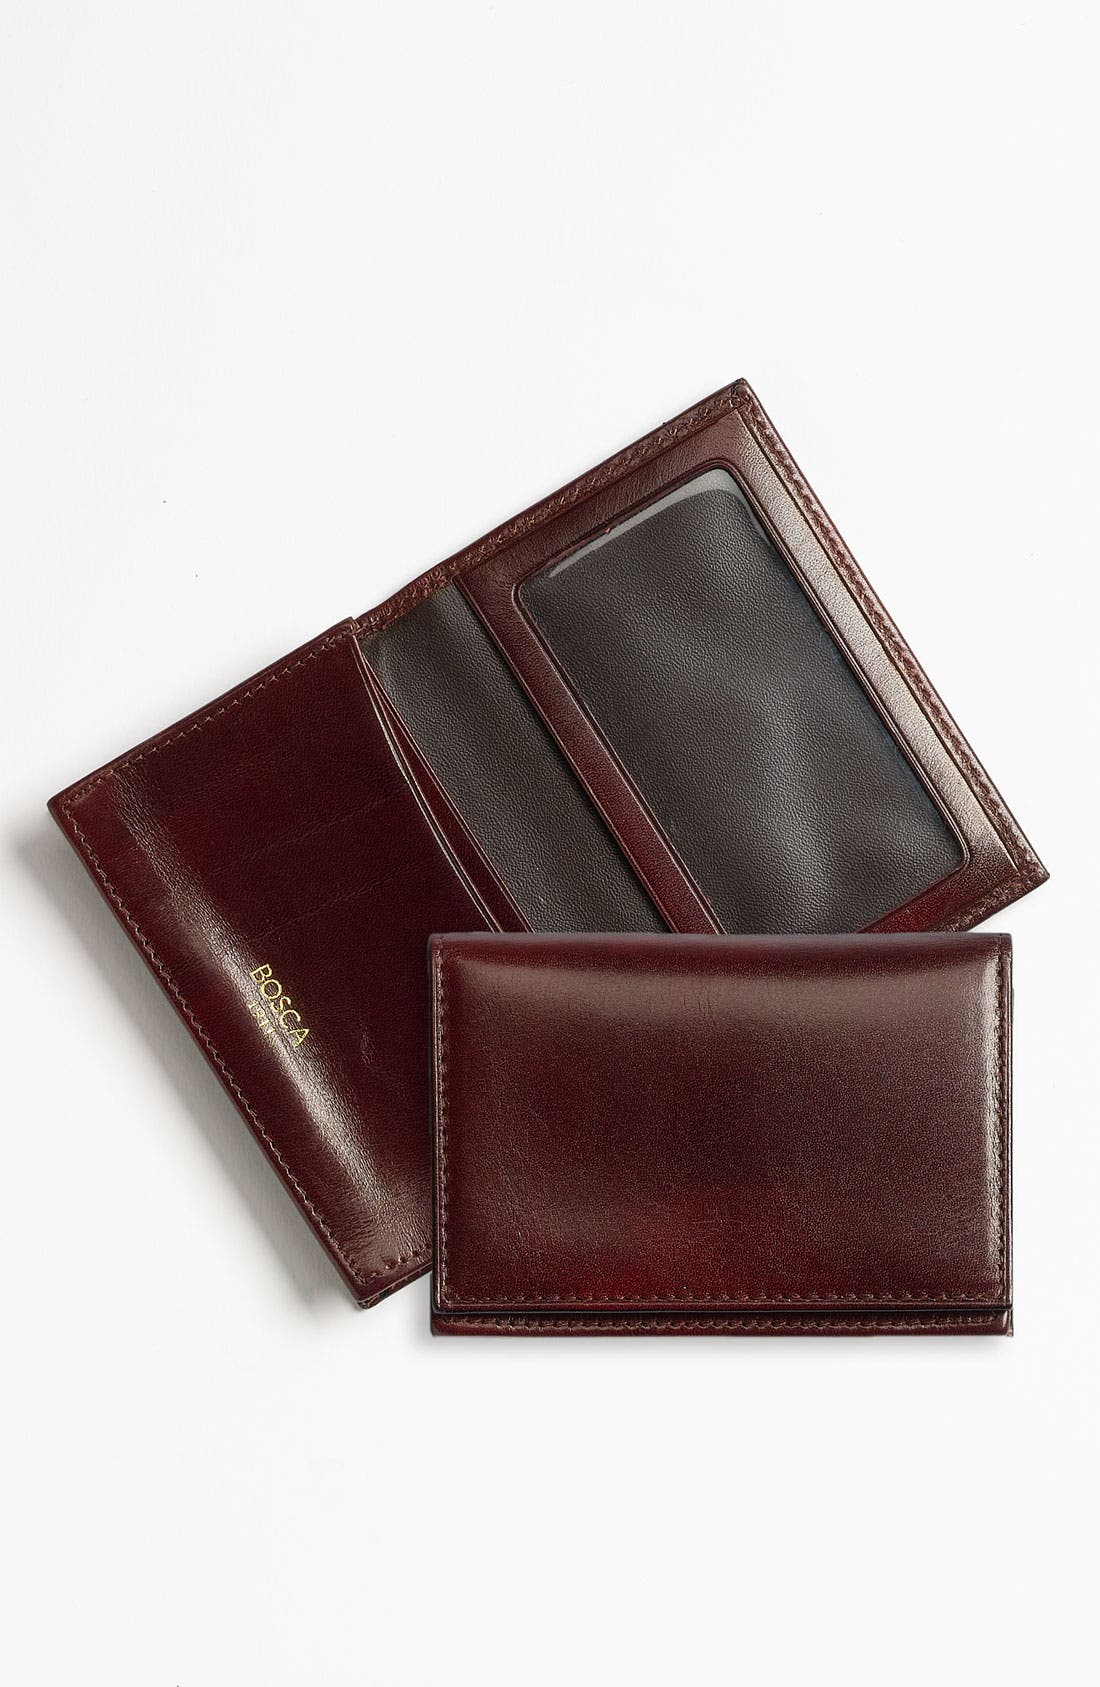 'Old Leather' Gusset Wallet,                             Main thumbnail 2, color,